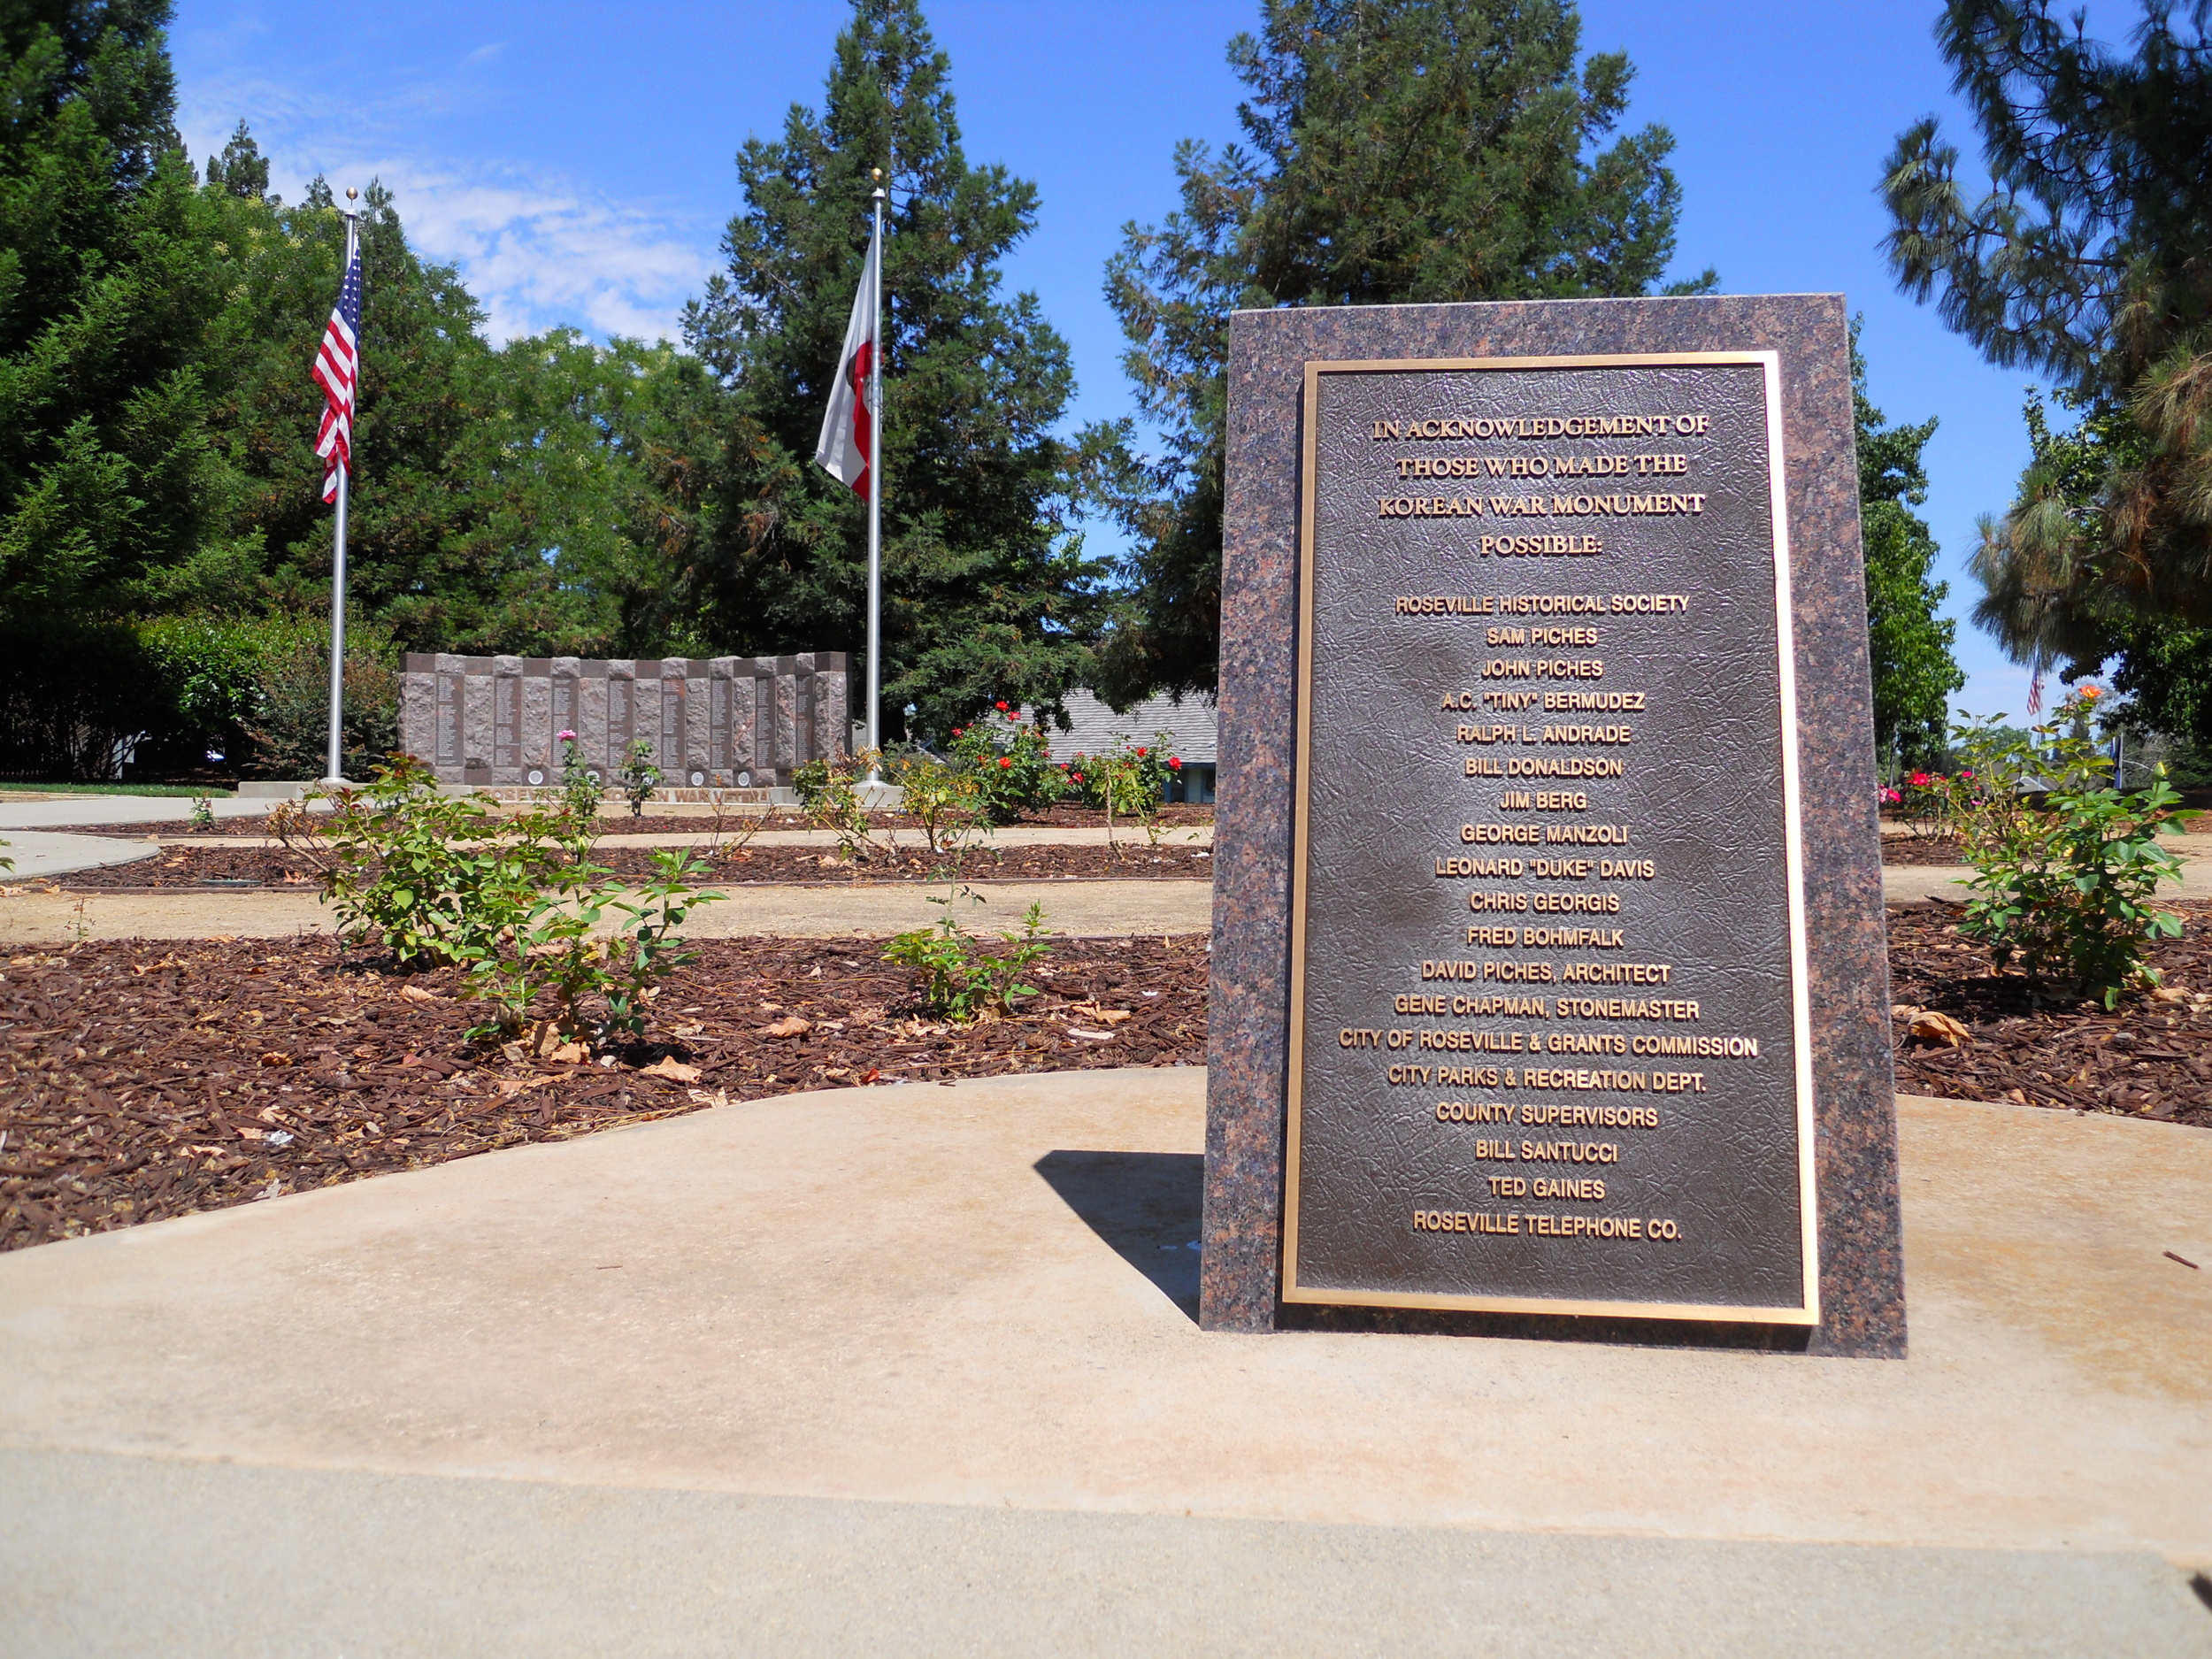 This bronze plaque acknowledges those who made the monument possible.  Click on photo to enlarge.